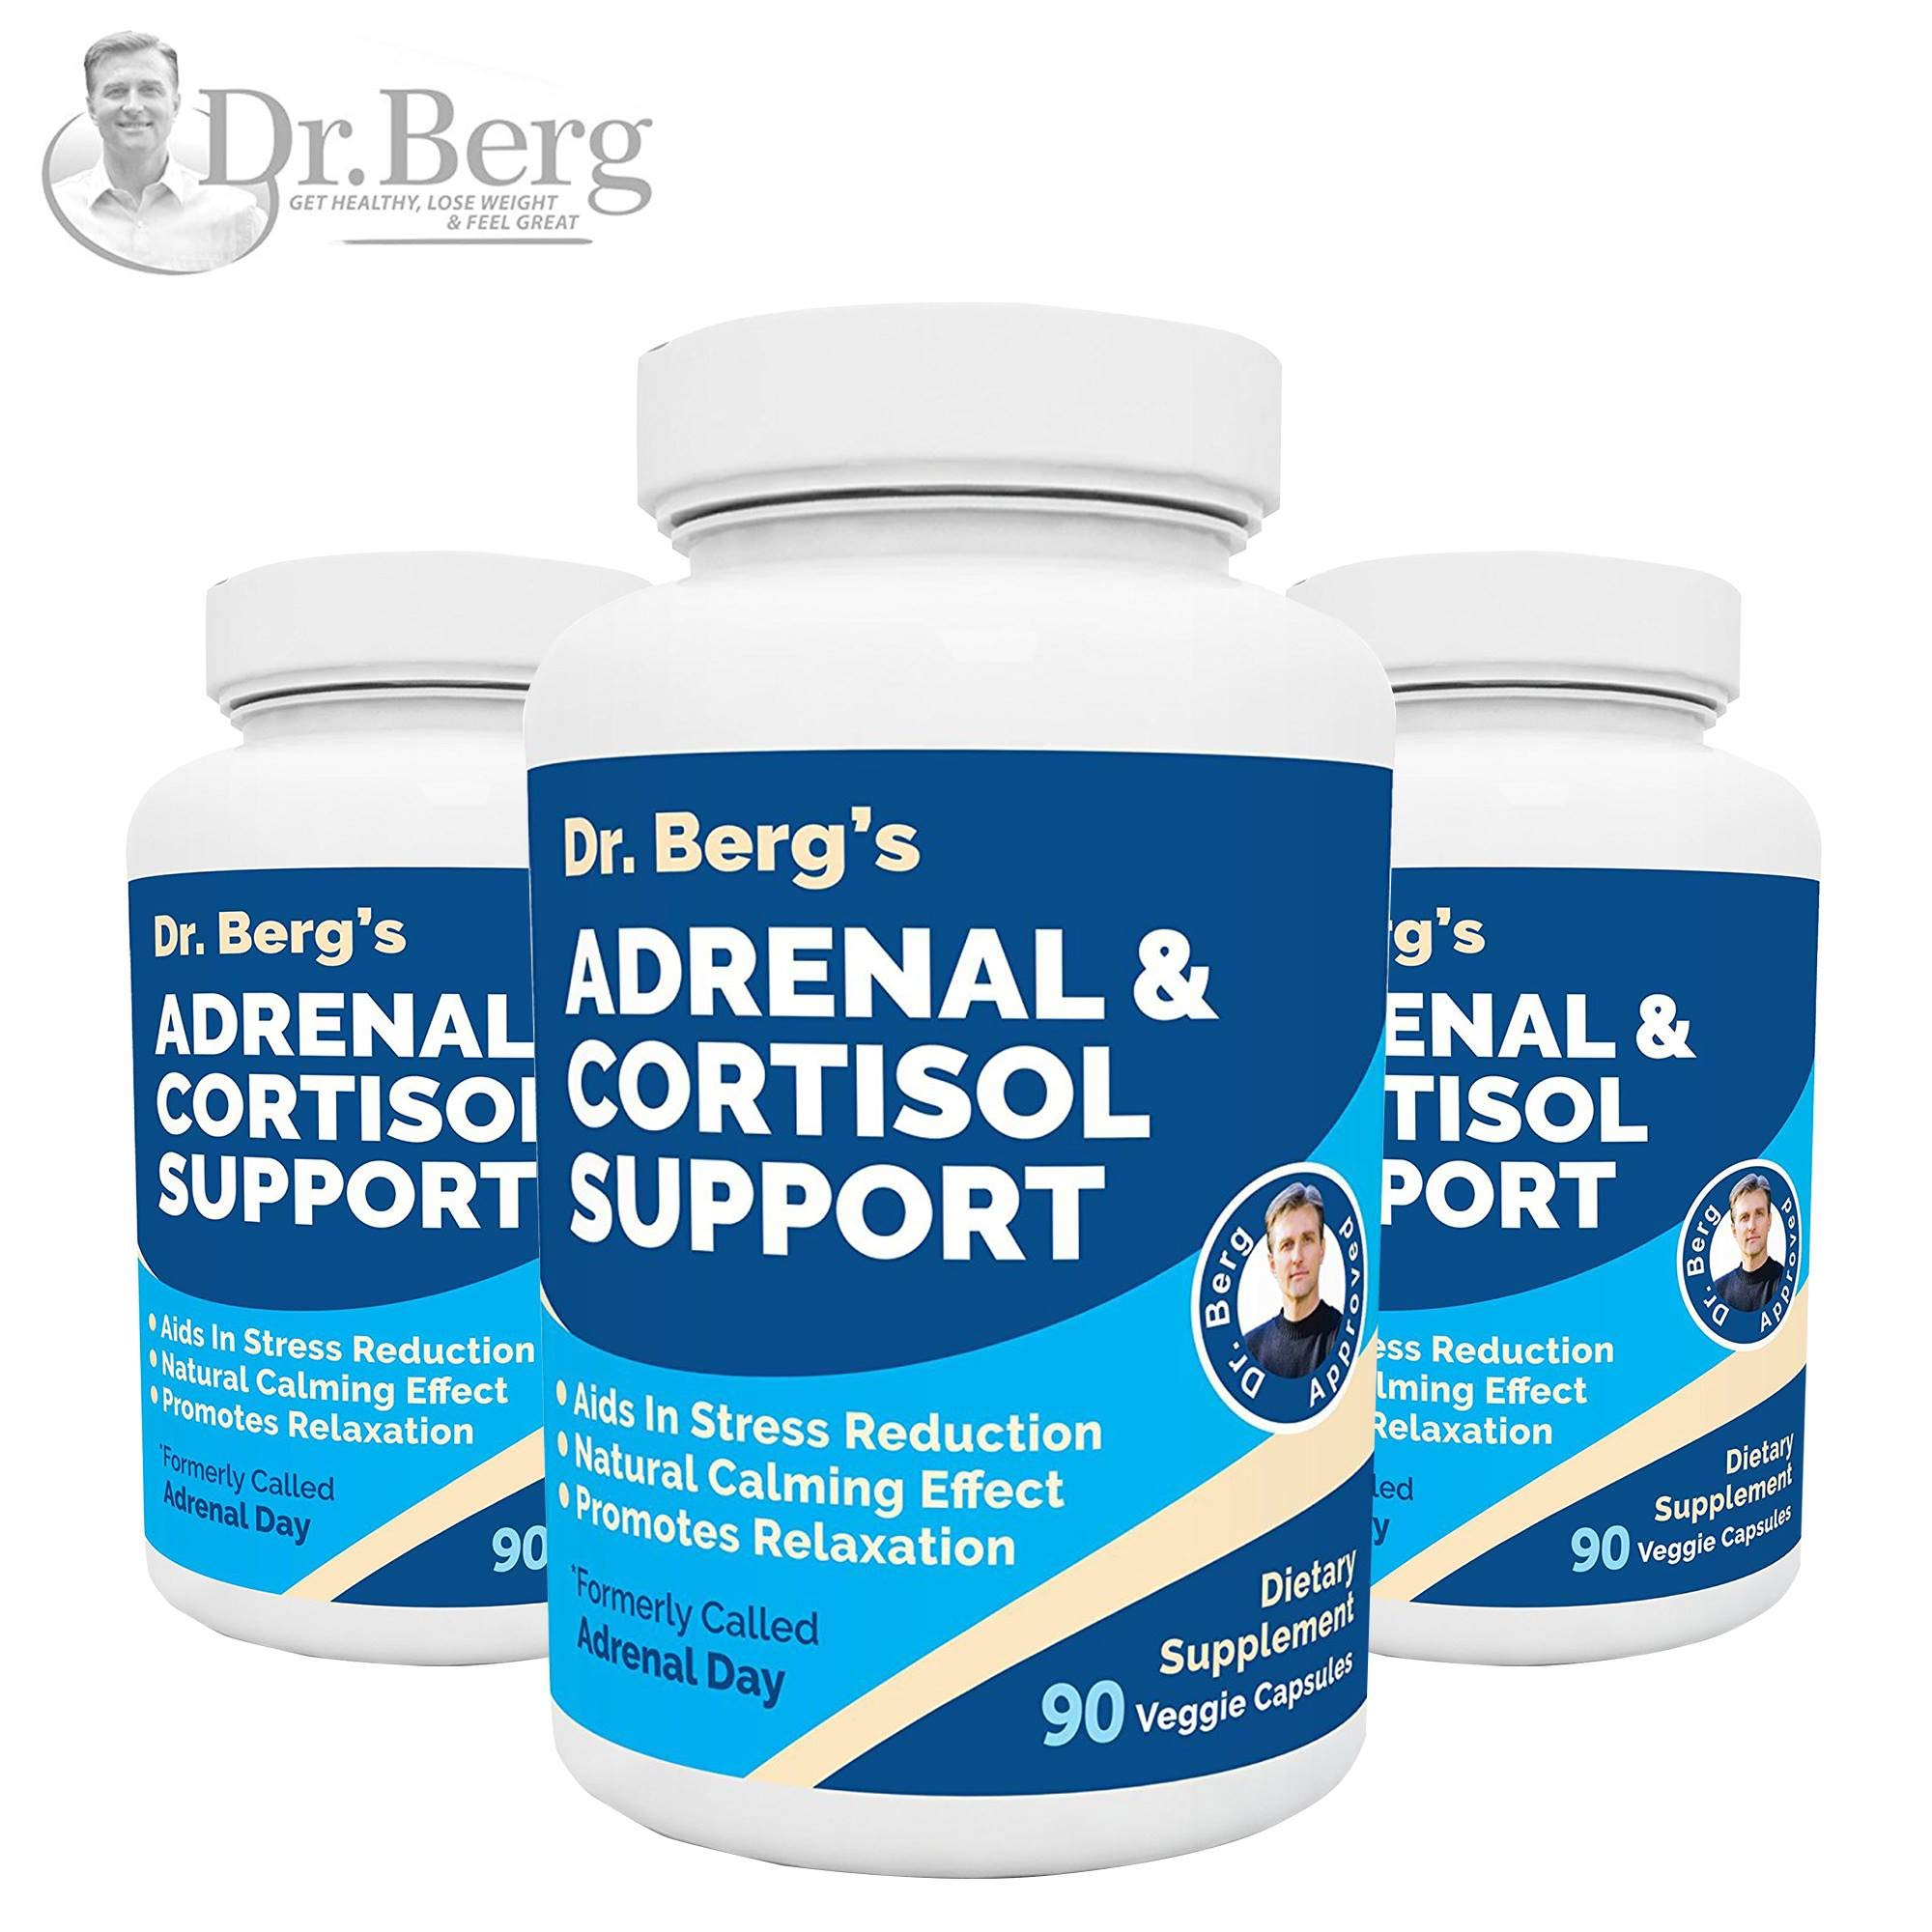 Dr. Berg's Adrenal & Cortisol Support: Natural Stress & Anxiety Relief for a Better Mood, Focus and Relaxation; Turn Off Your Busy Mind, Vegetarian Ingredients : 90 Capsules (3 Pack) by Dr. Berg's Nutritionals (Image #1)